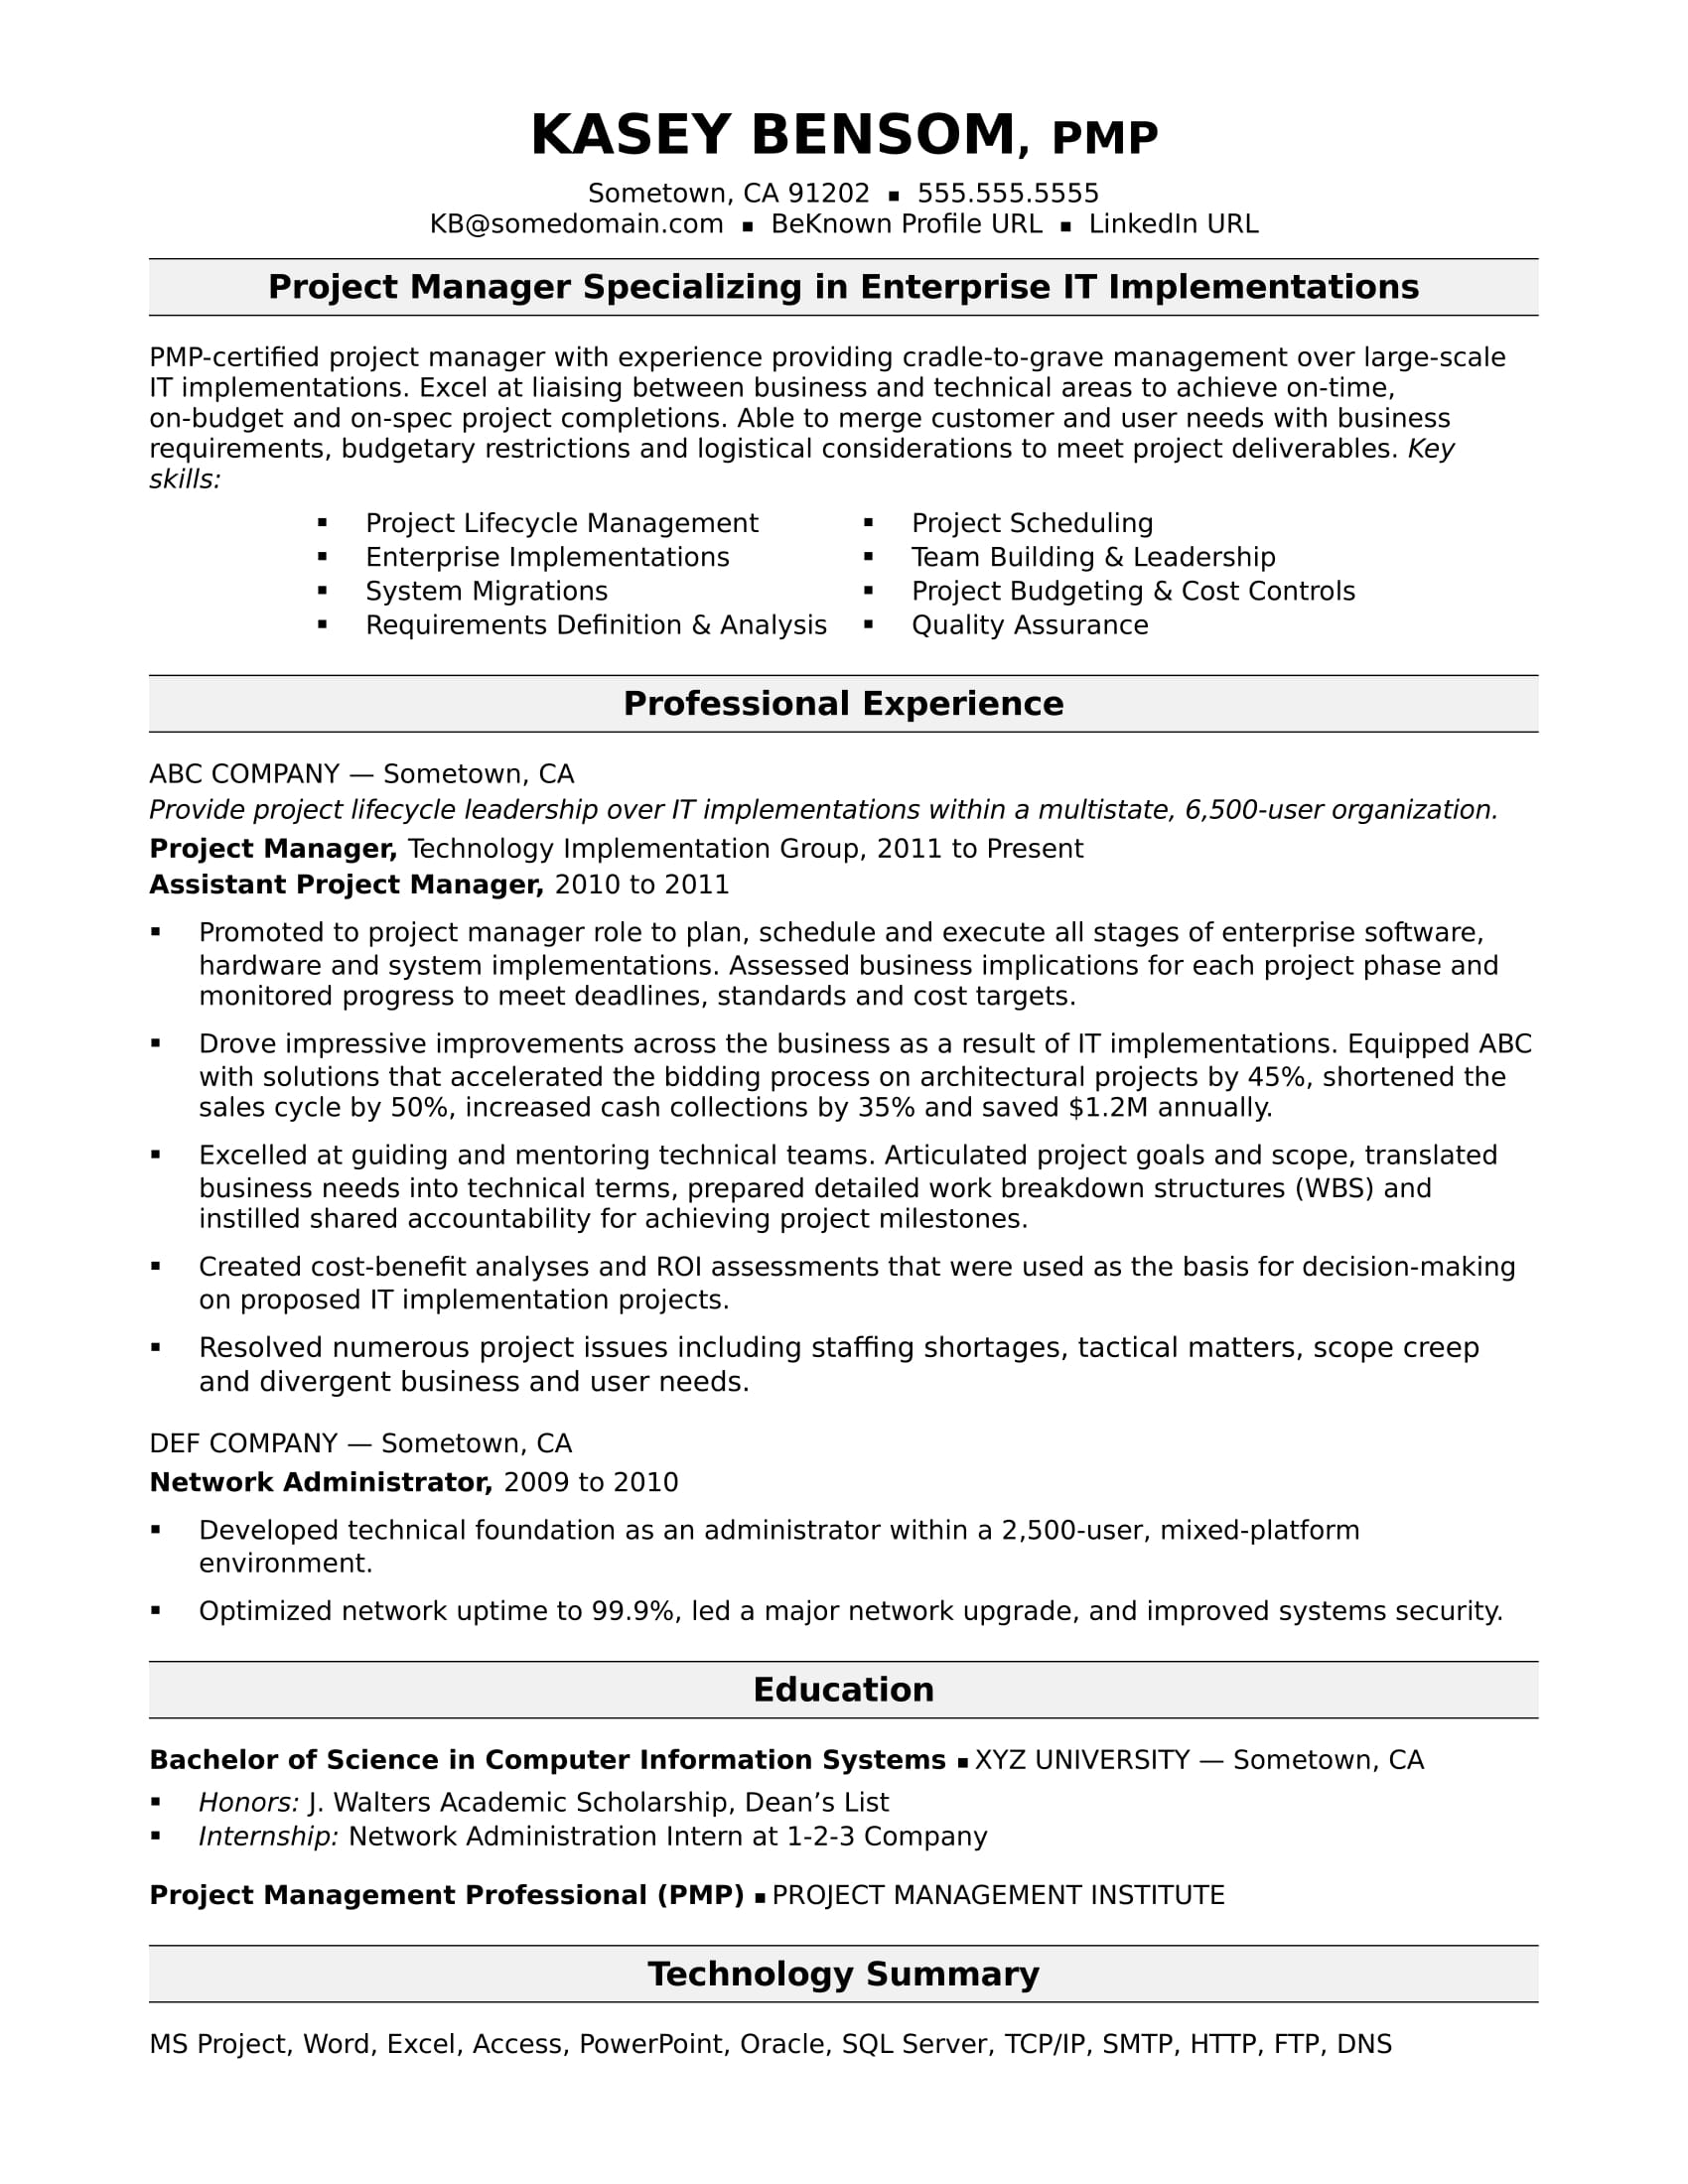 sample resume for midlevel it project manager monster program responsibilities examples Resume Program Manager Responsibilities Resume